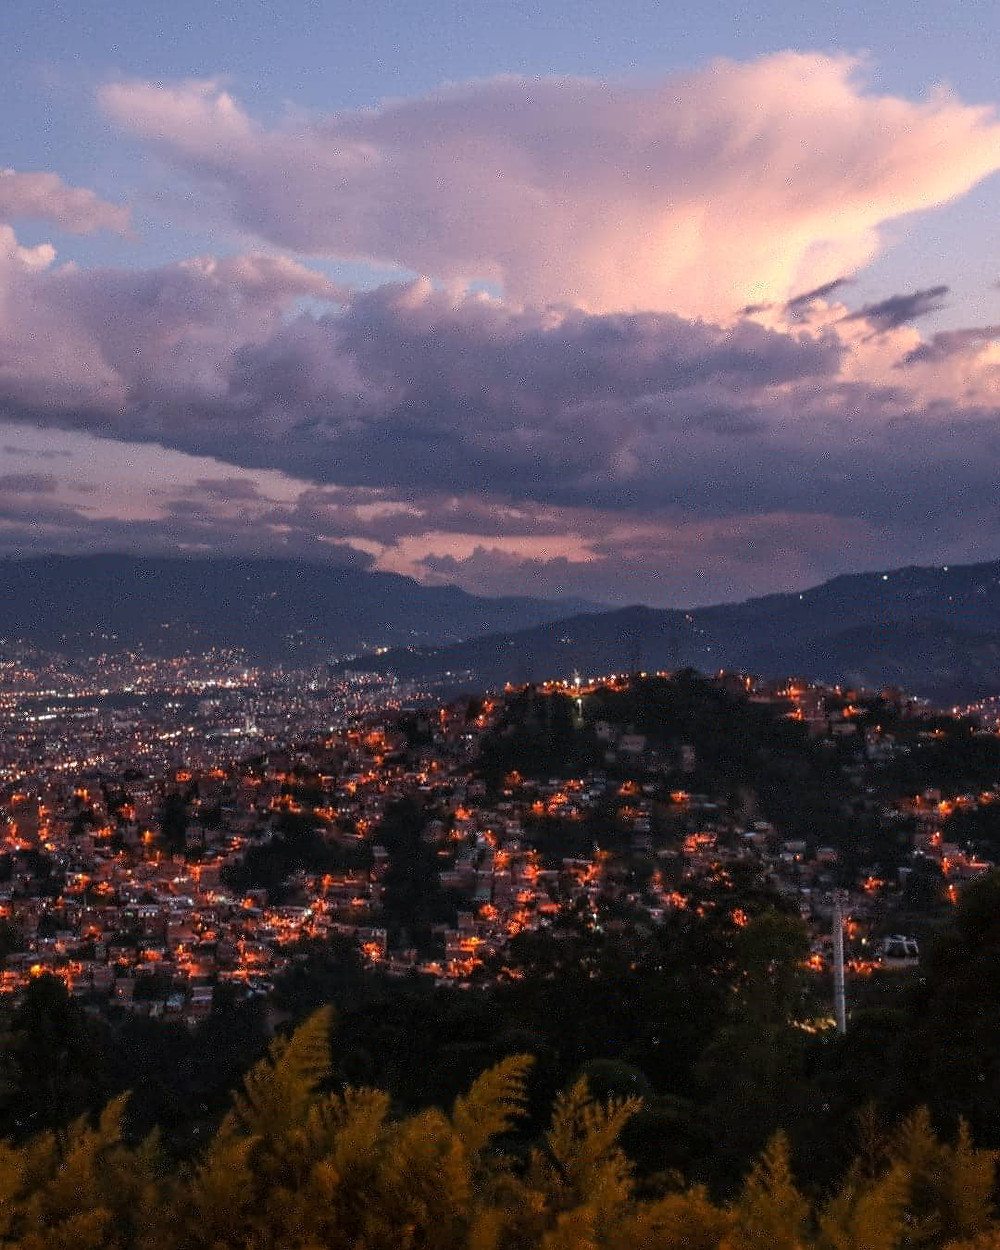 Evening overview from the top of the North gondola route in Medellín, Colombia.